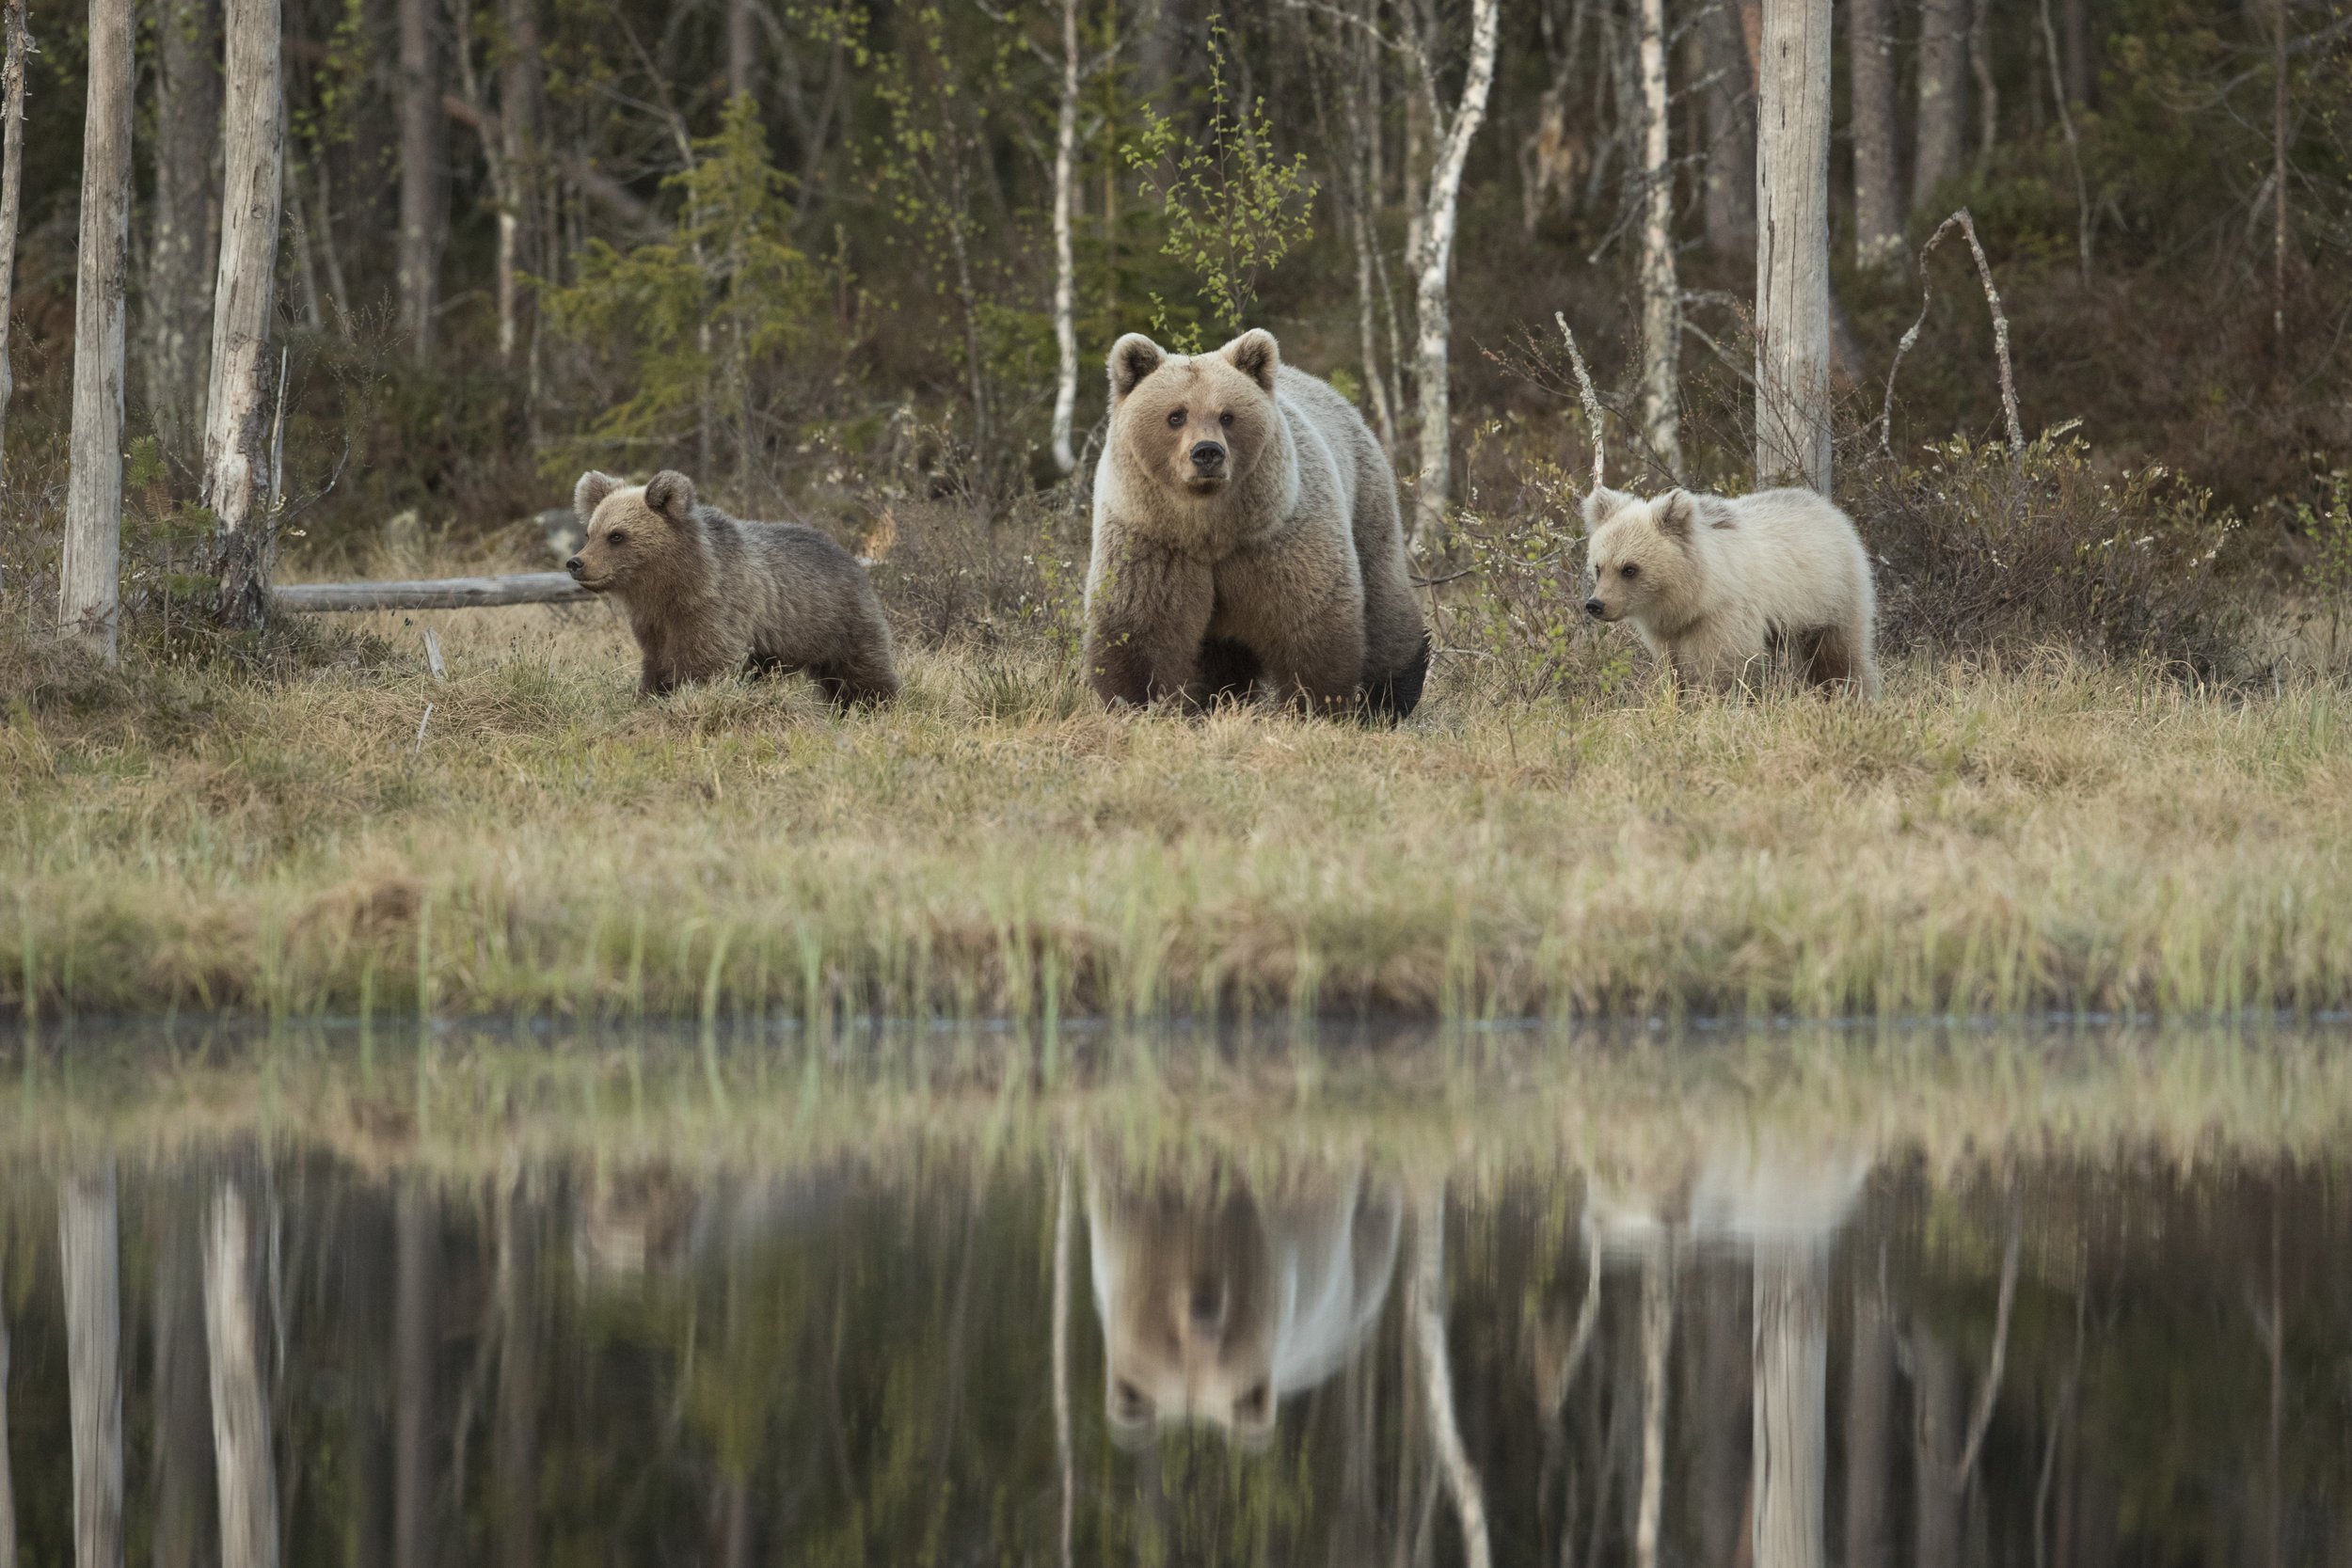 The mother bear and her 2 cubs venture out by the main pond, their reflections just visible in the water.